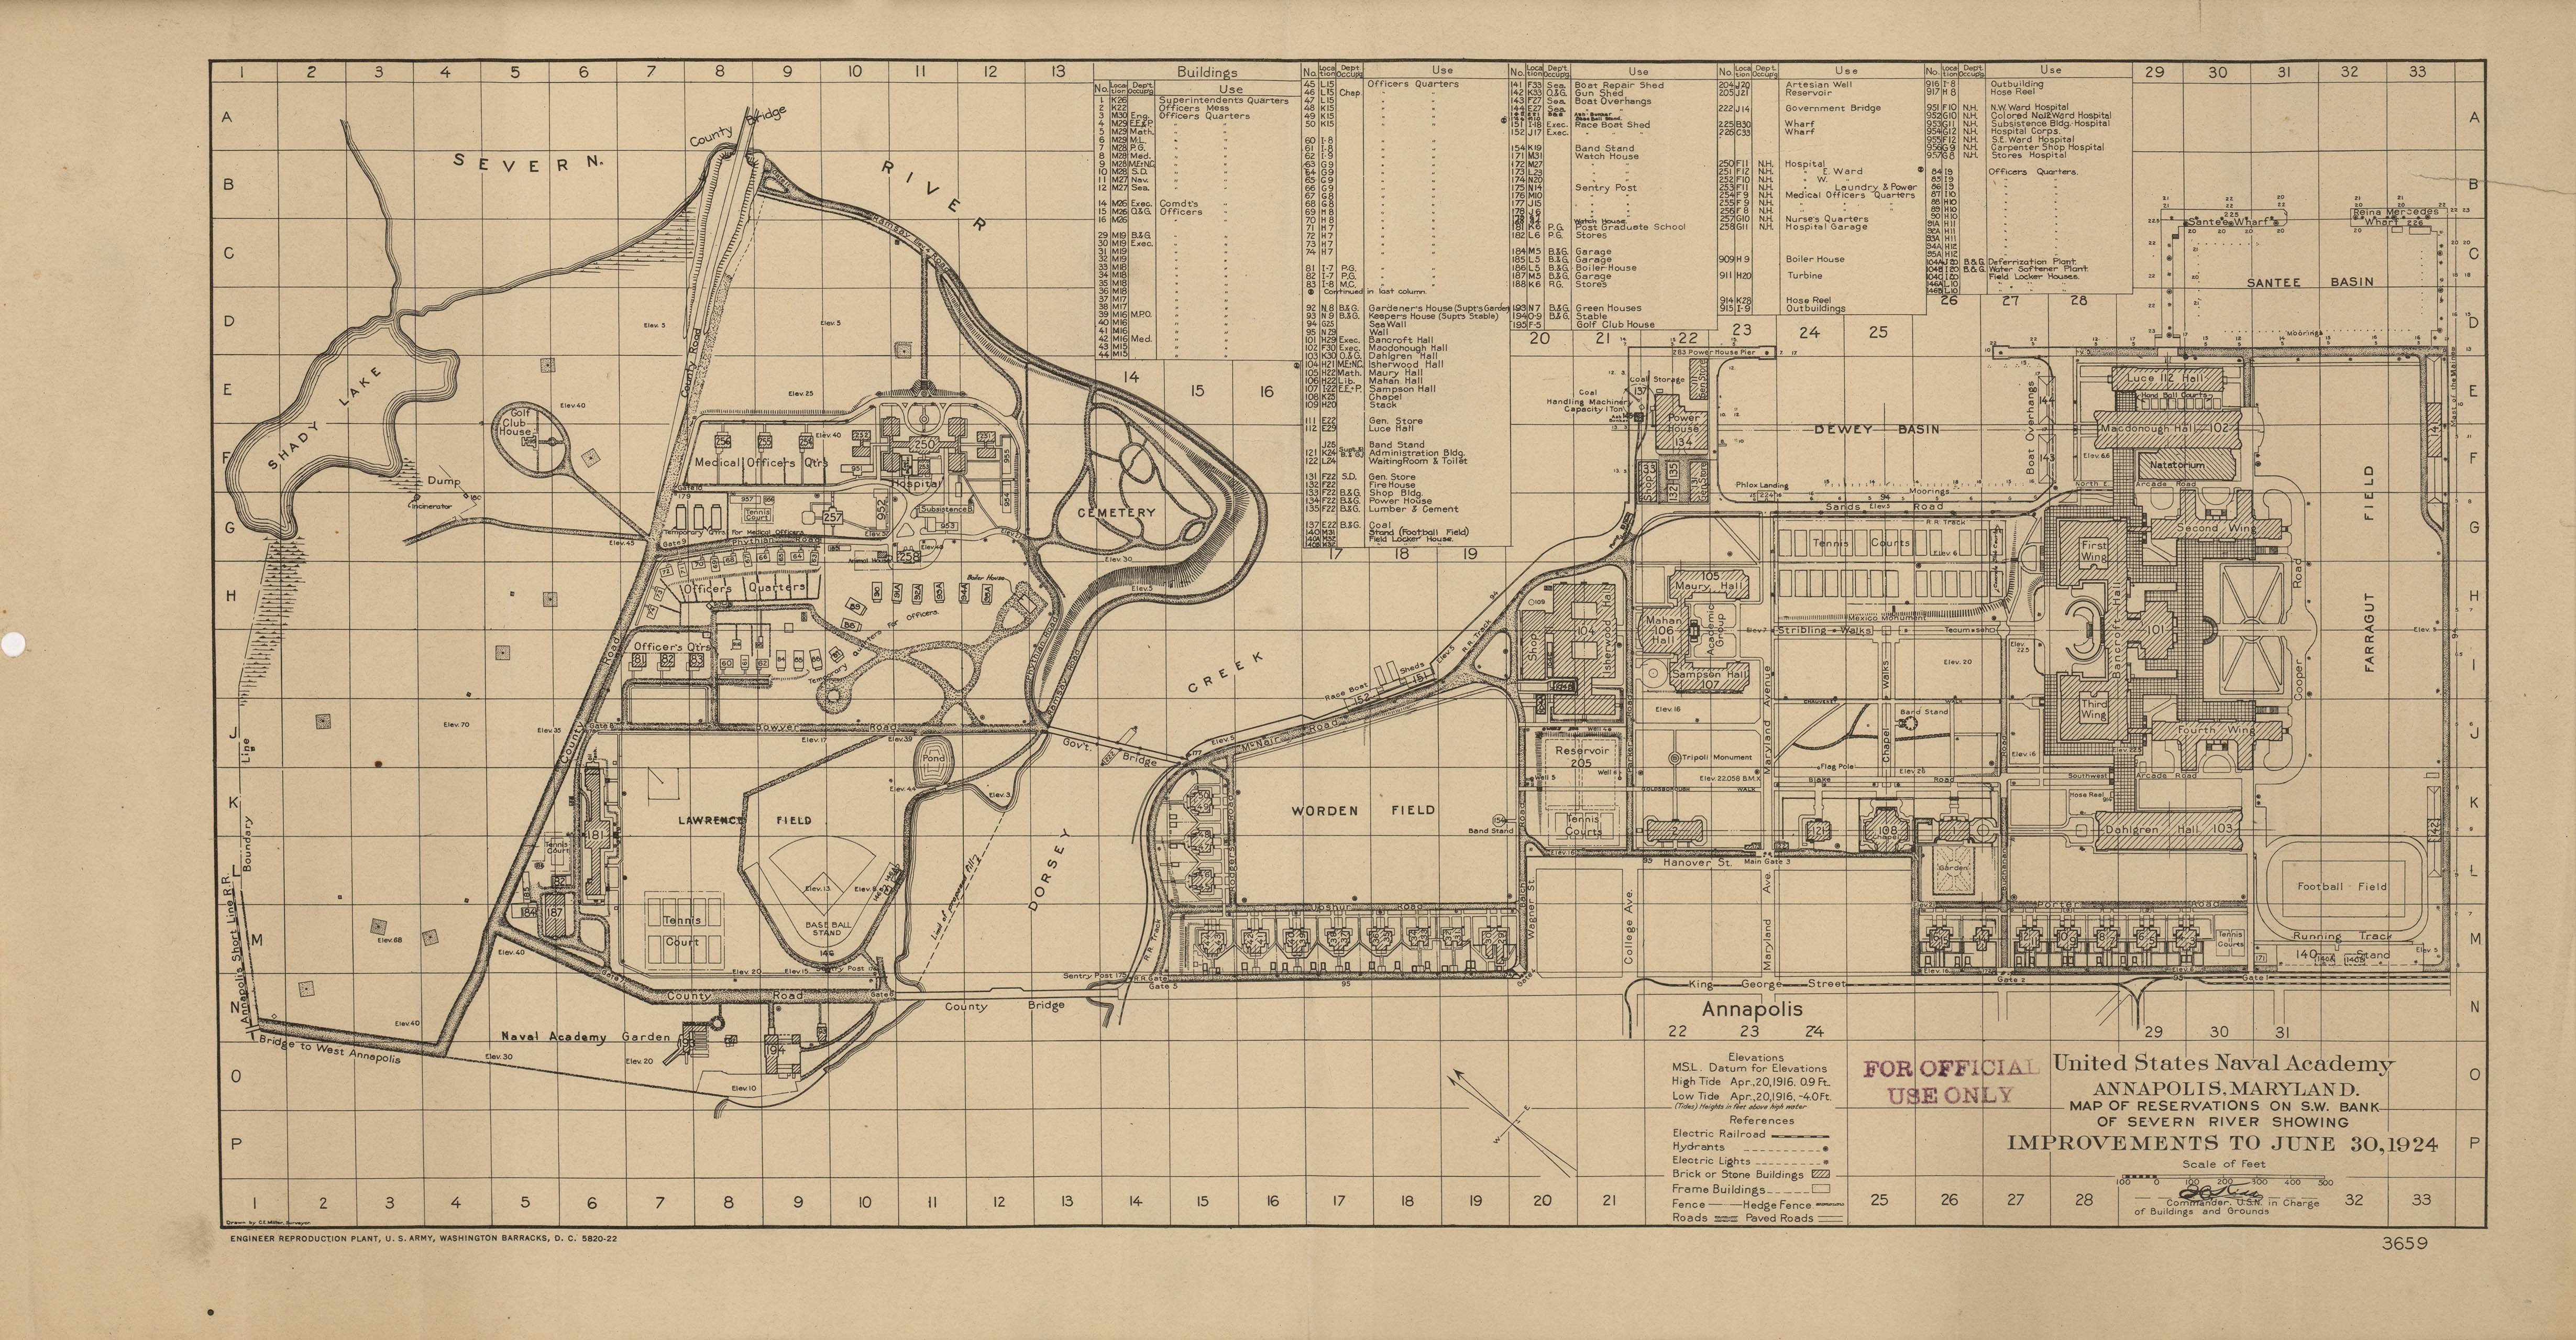 Maryland Maps - Perry-Castañeda Map Collection - UT Library Online